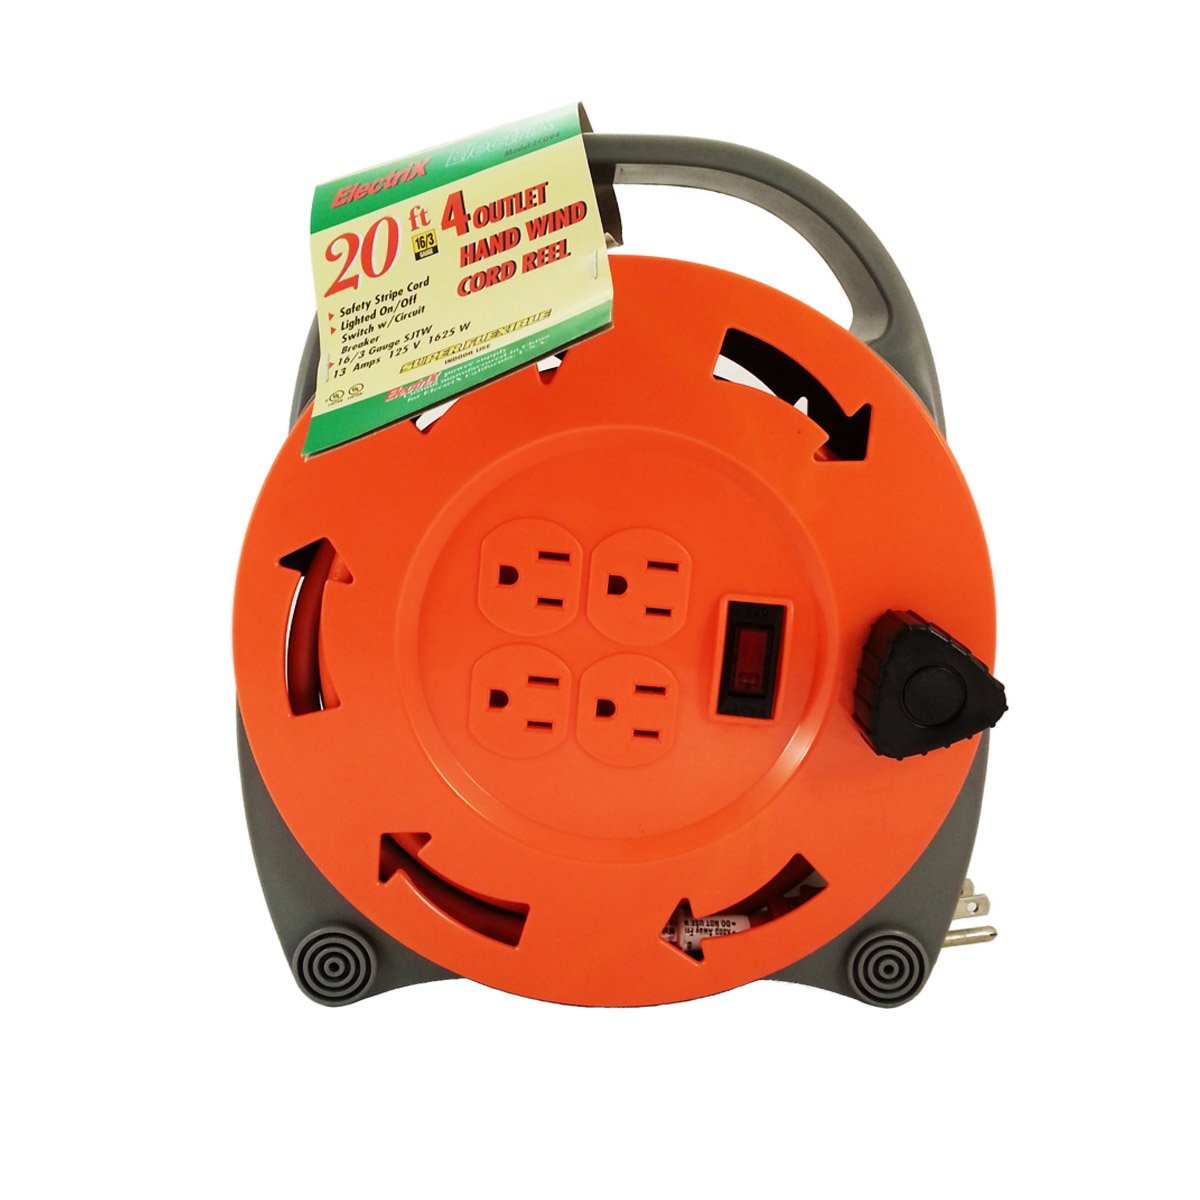 ElectriX 20 Ft 16/3 AWG Gauge SJTW 4 Outlet Hand Wind Grounded Cord Reel Retractable UL Listed EC094